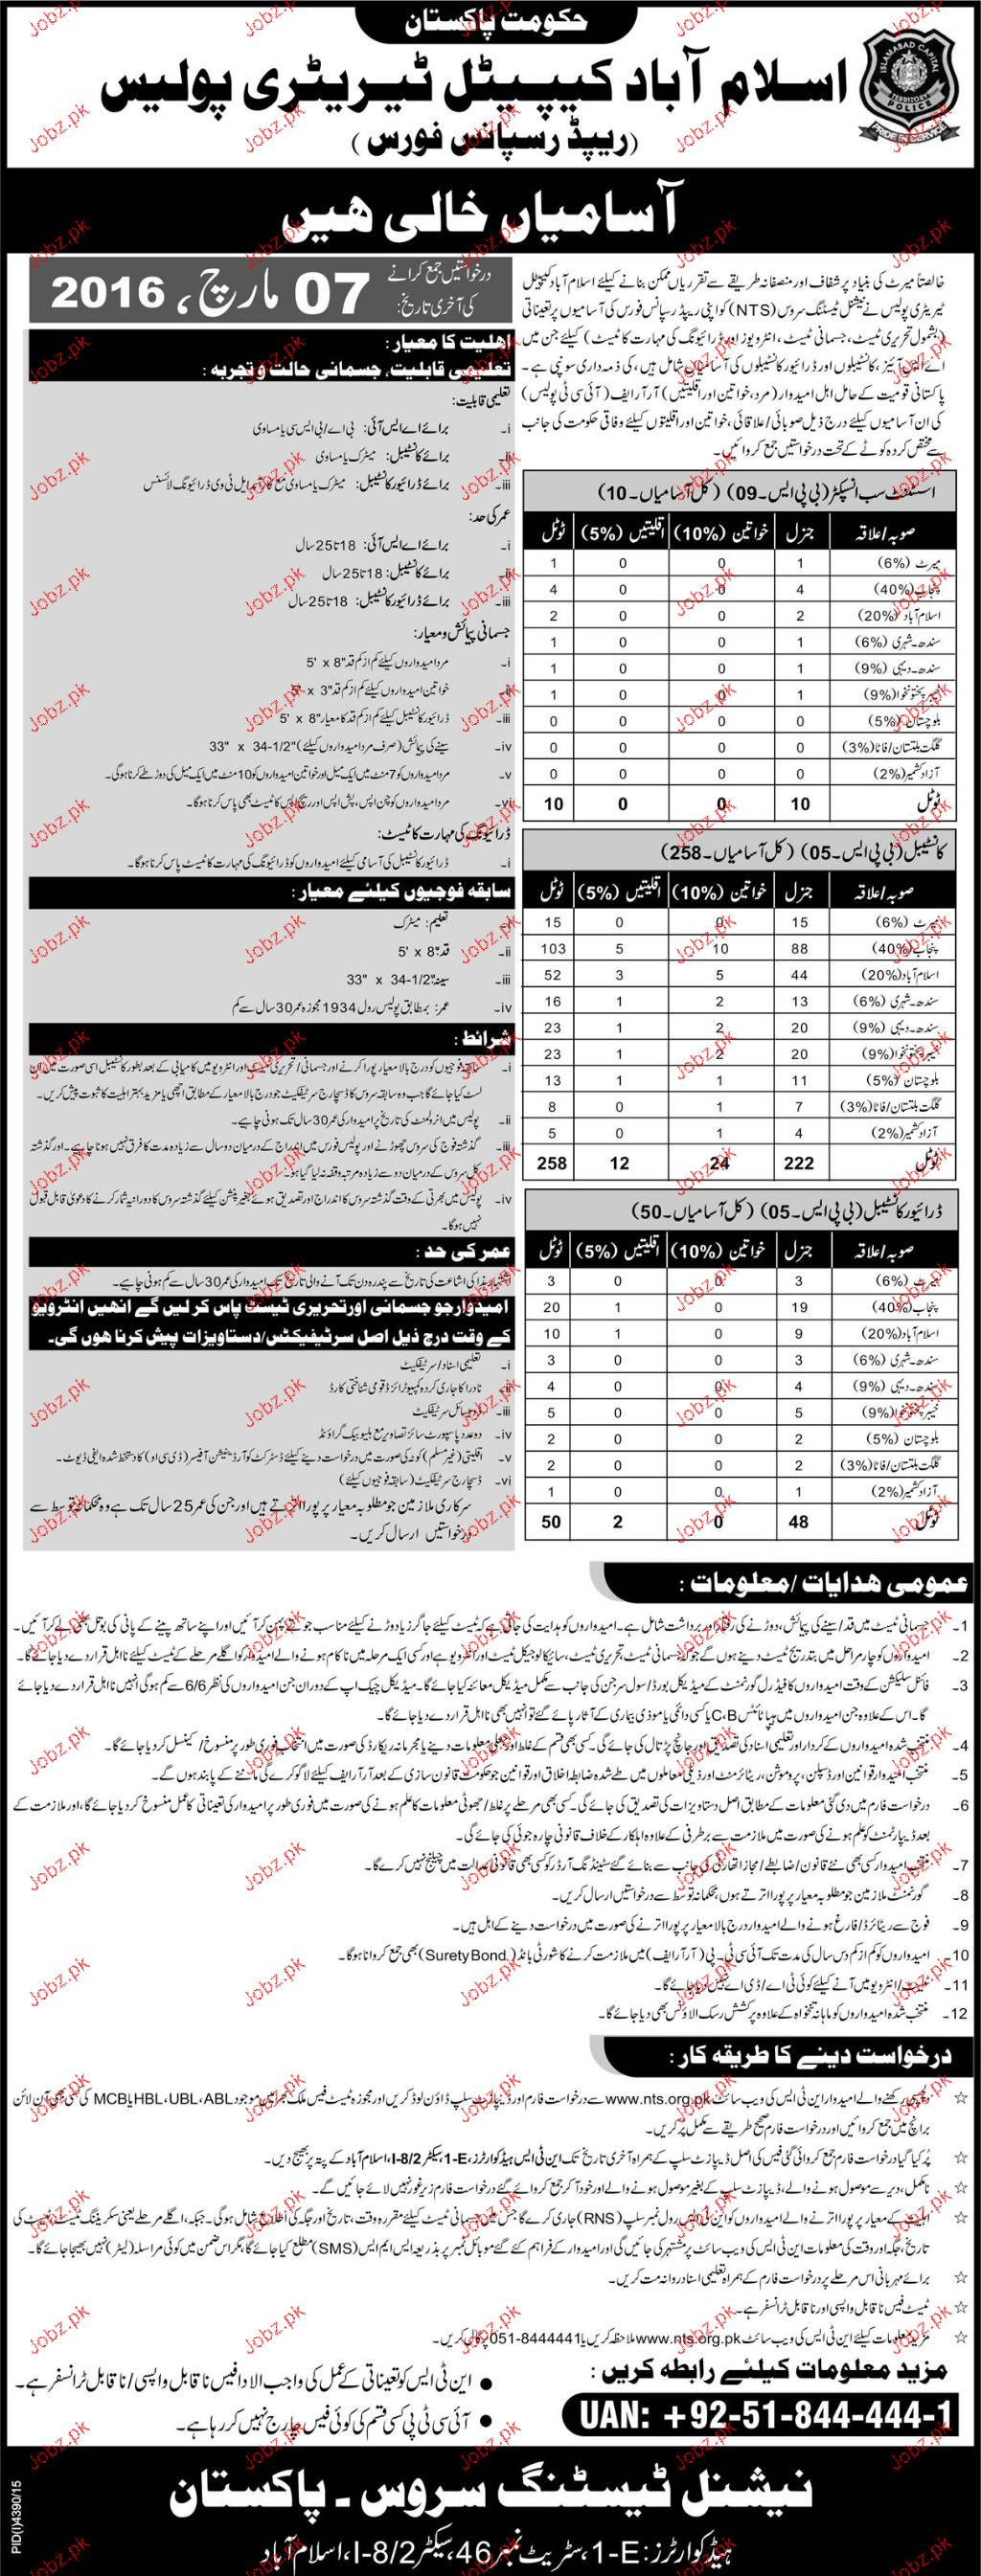 Constables, Assistant Sub Inspector Job in Islamabad Police